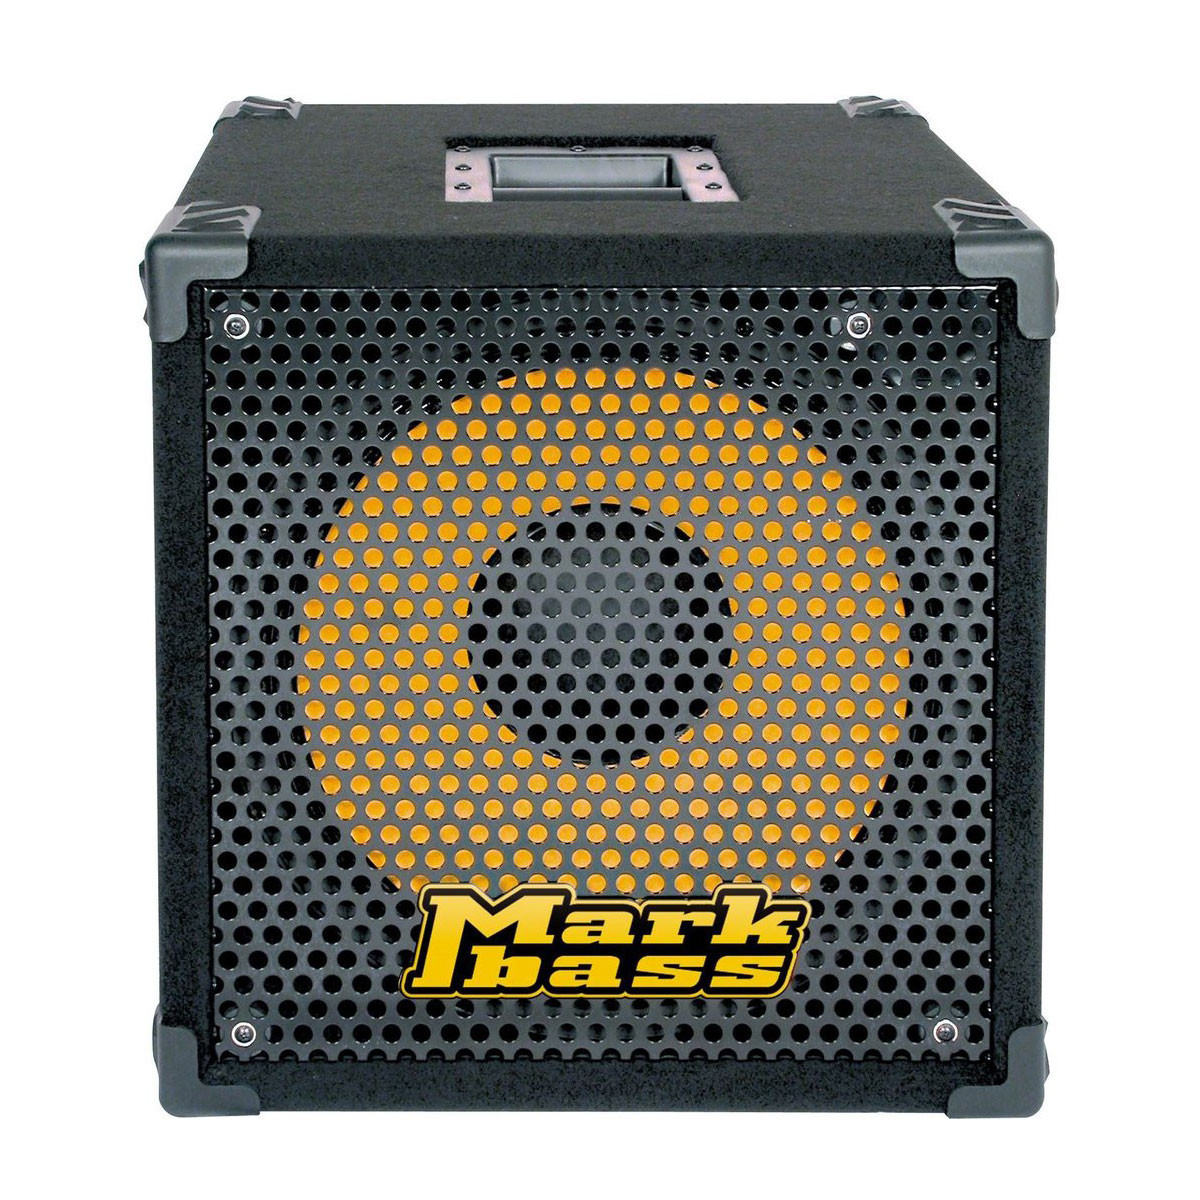 MarkBass New York 151 1x15 8 Ohm Speaker Cabinet at Gear4music.com